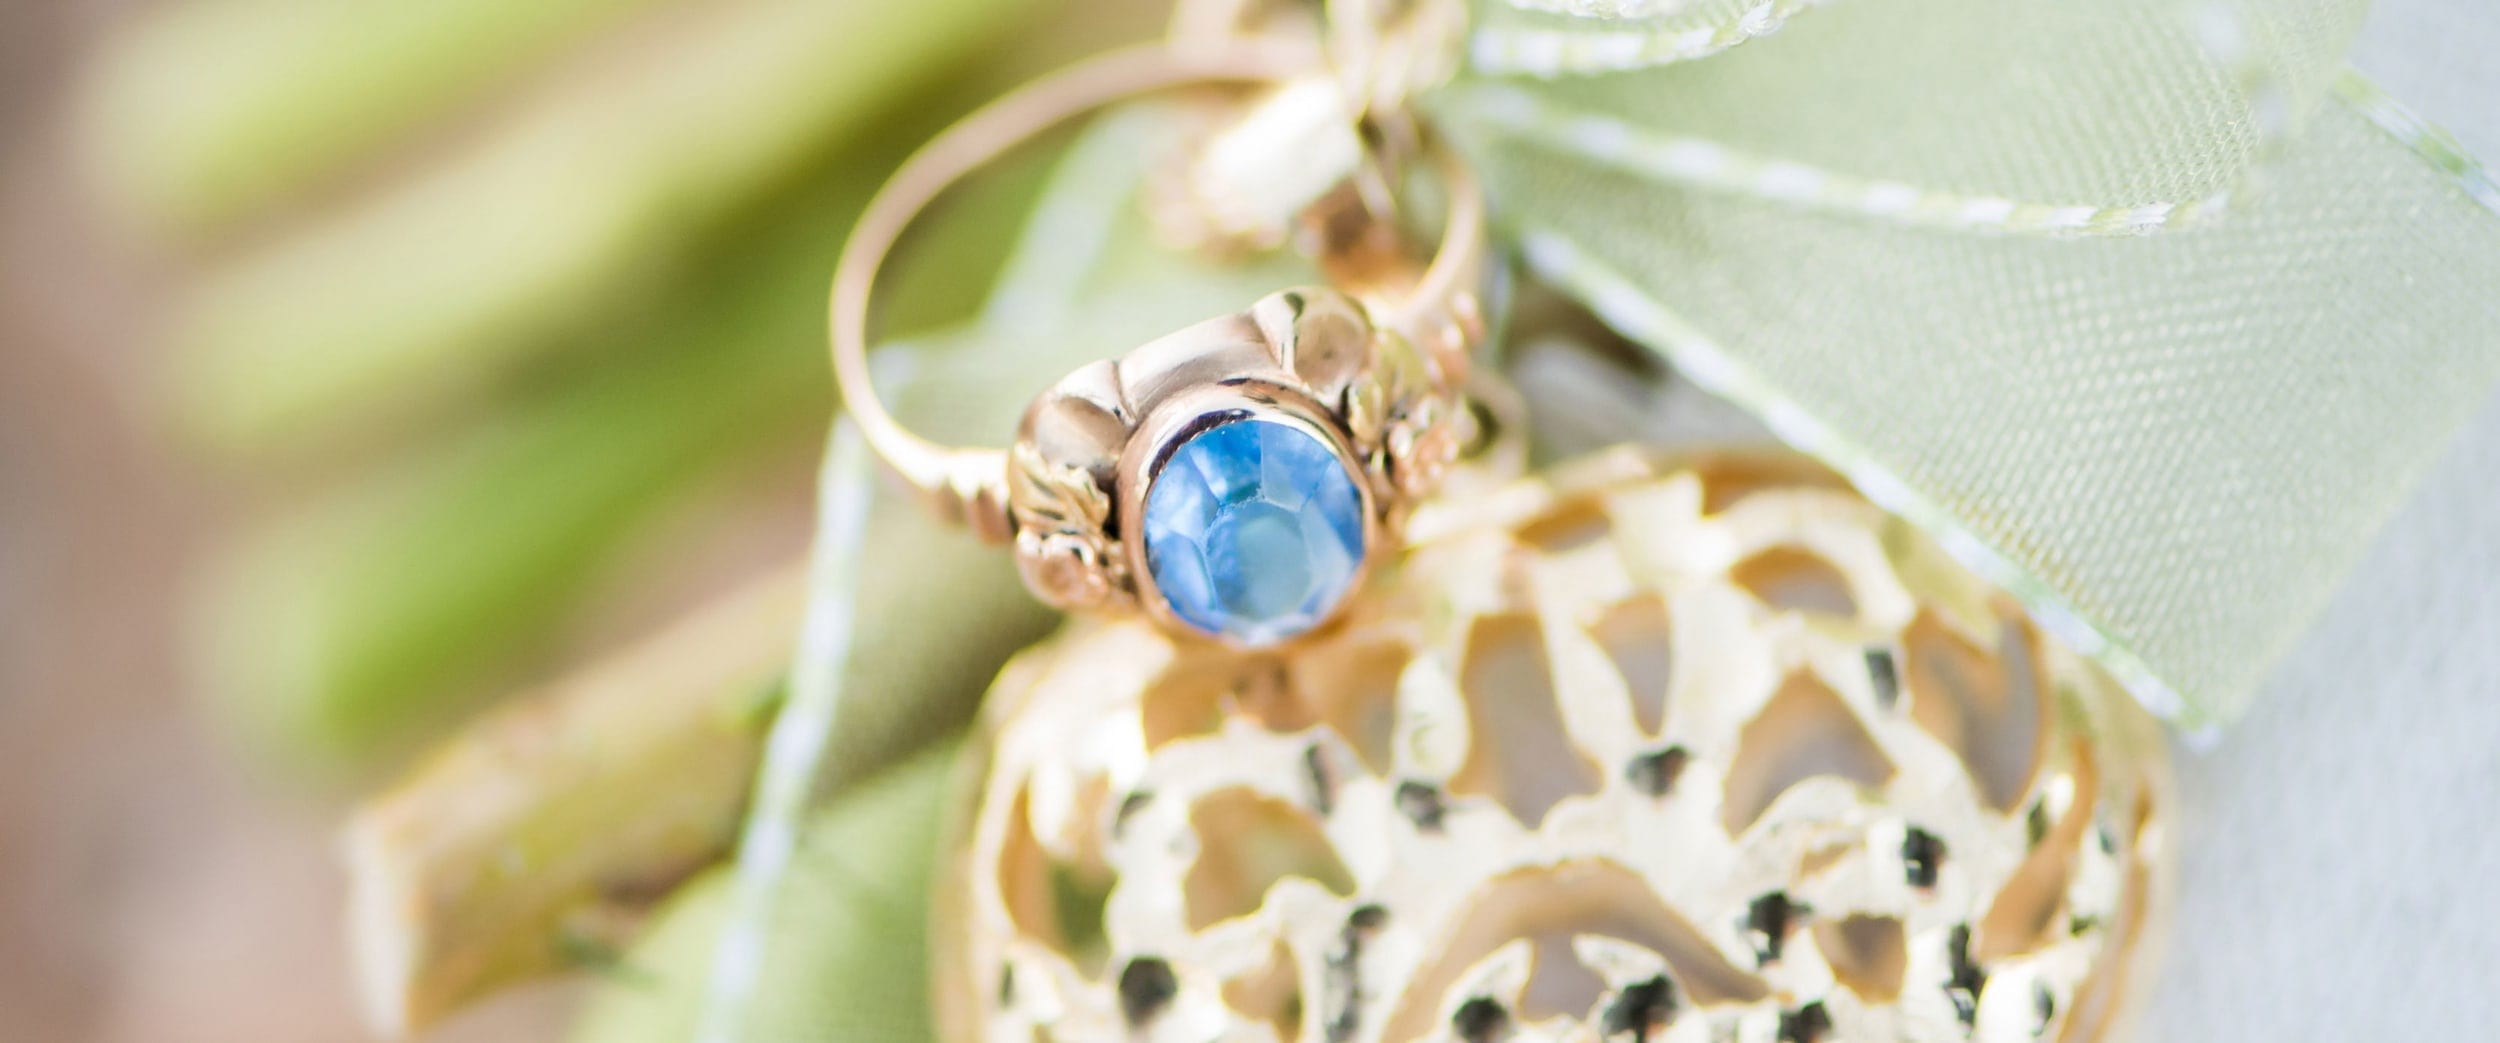 A photo of a blue gem in a gold ring setting.